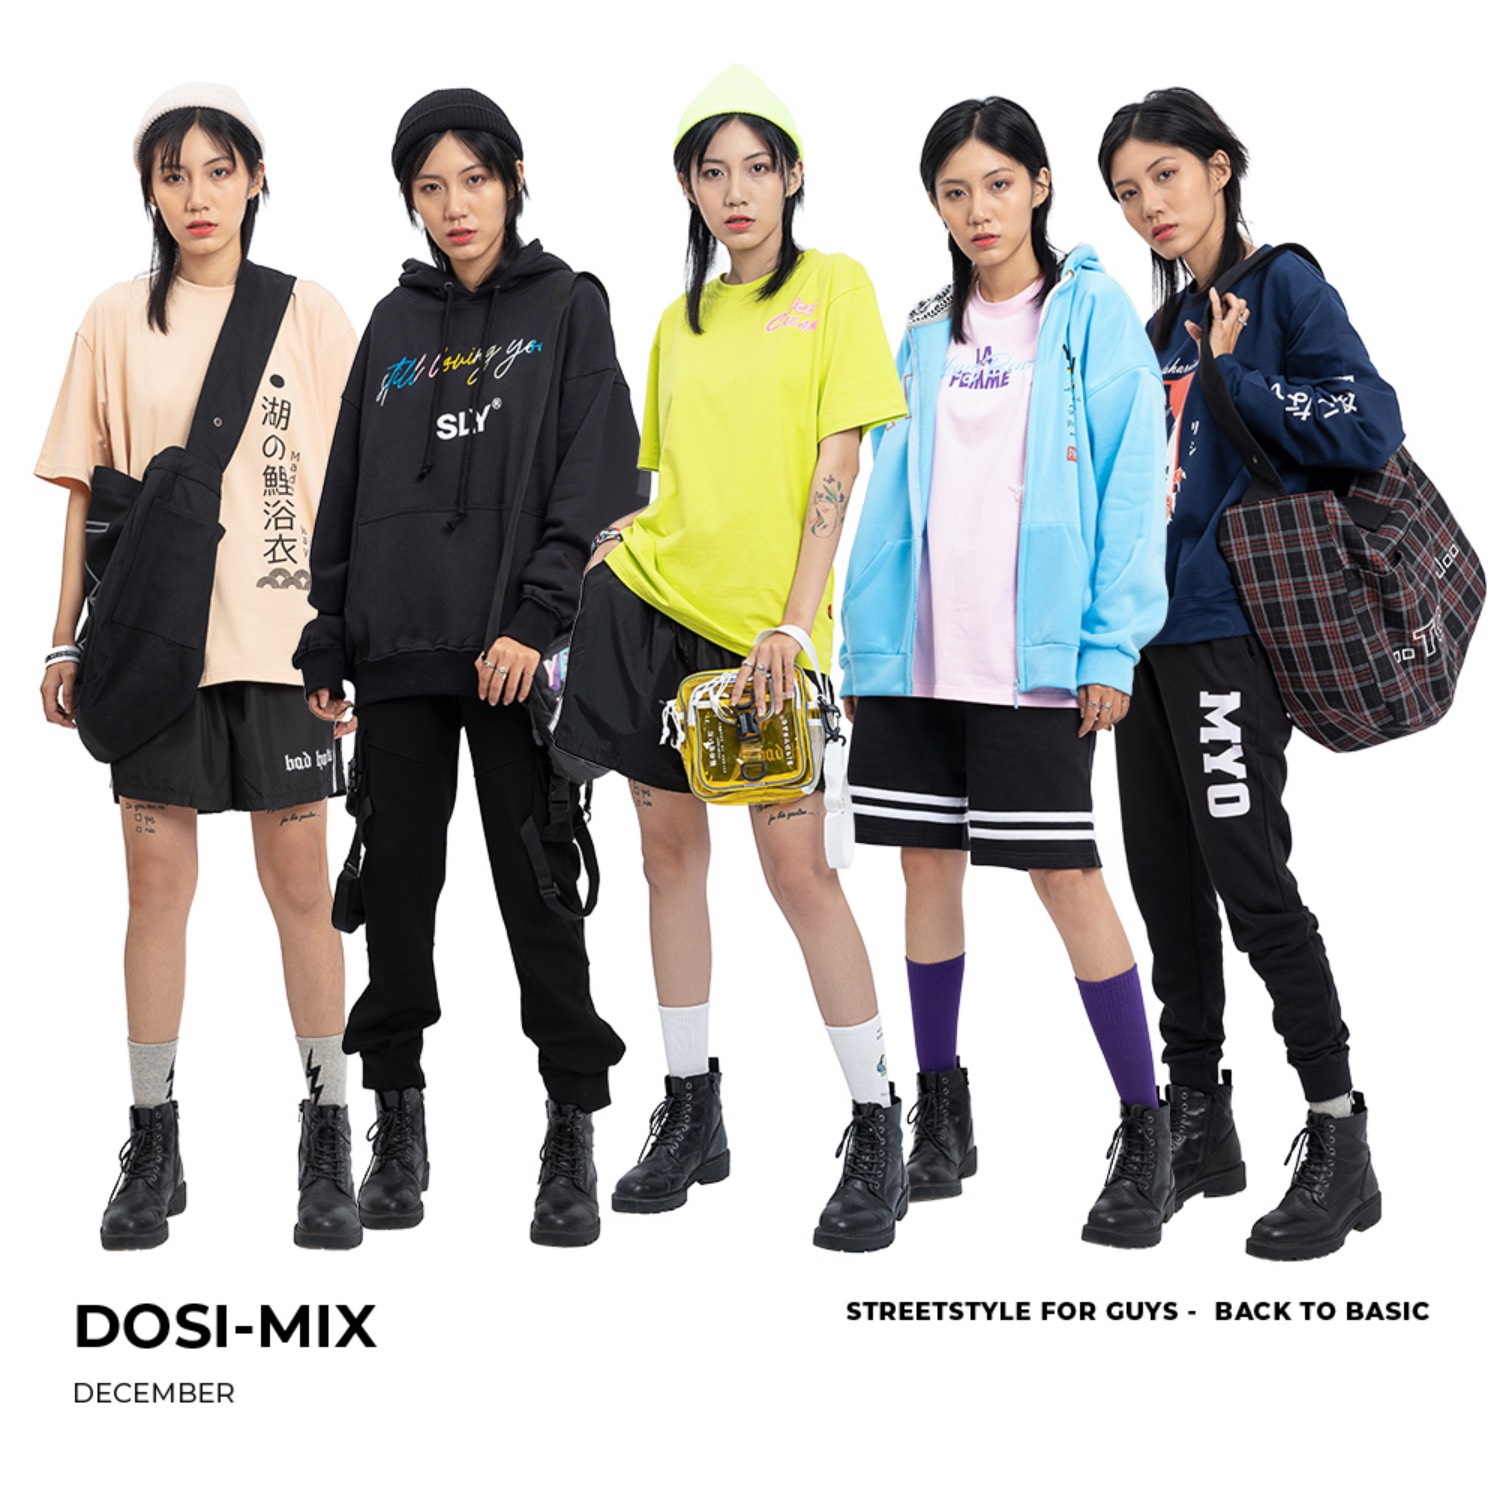 DOSI-MIX - DECEMBER #2 STREET STYLE FOR GUYS - BACK TO BASIC